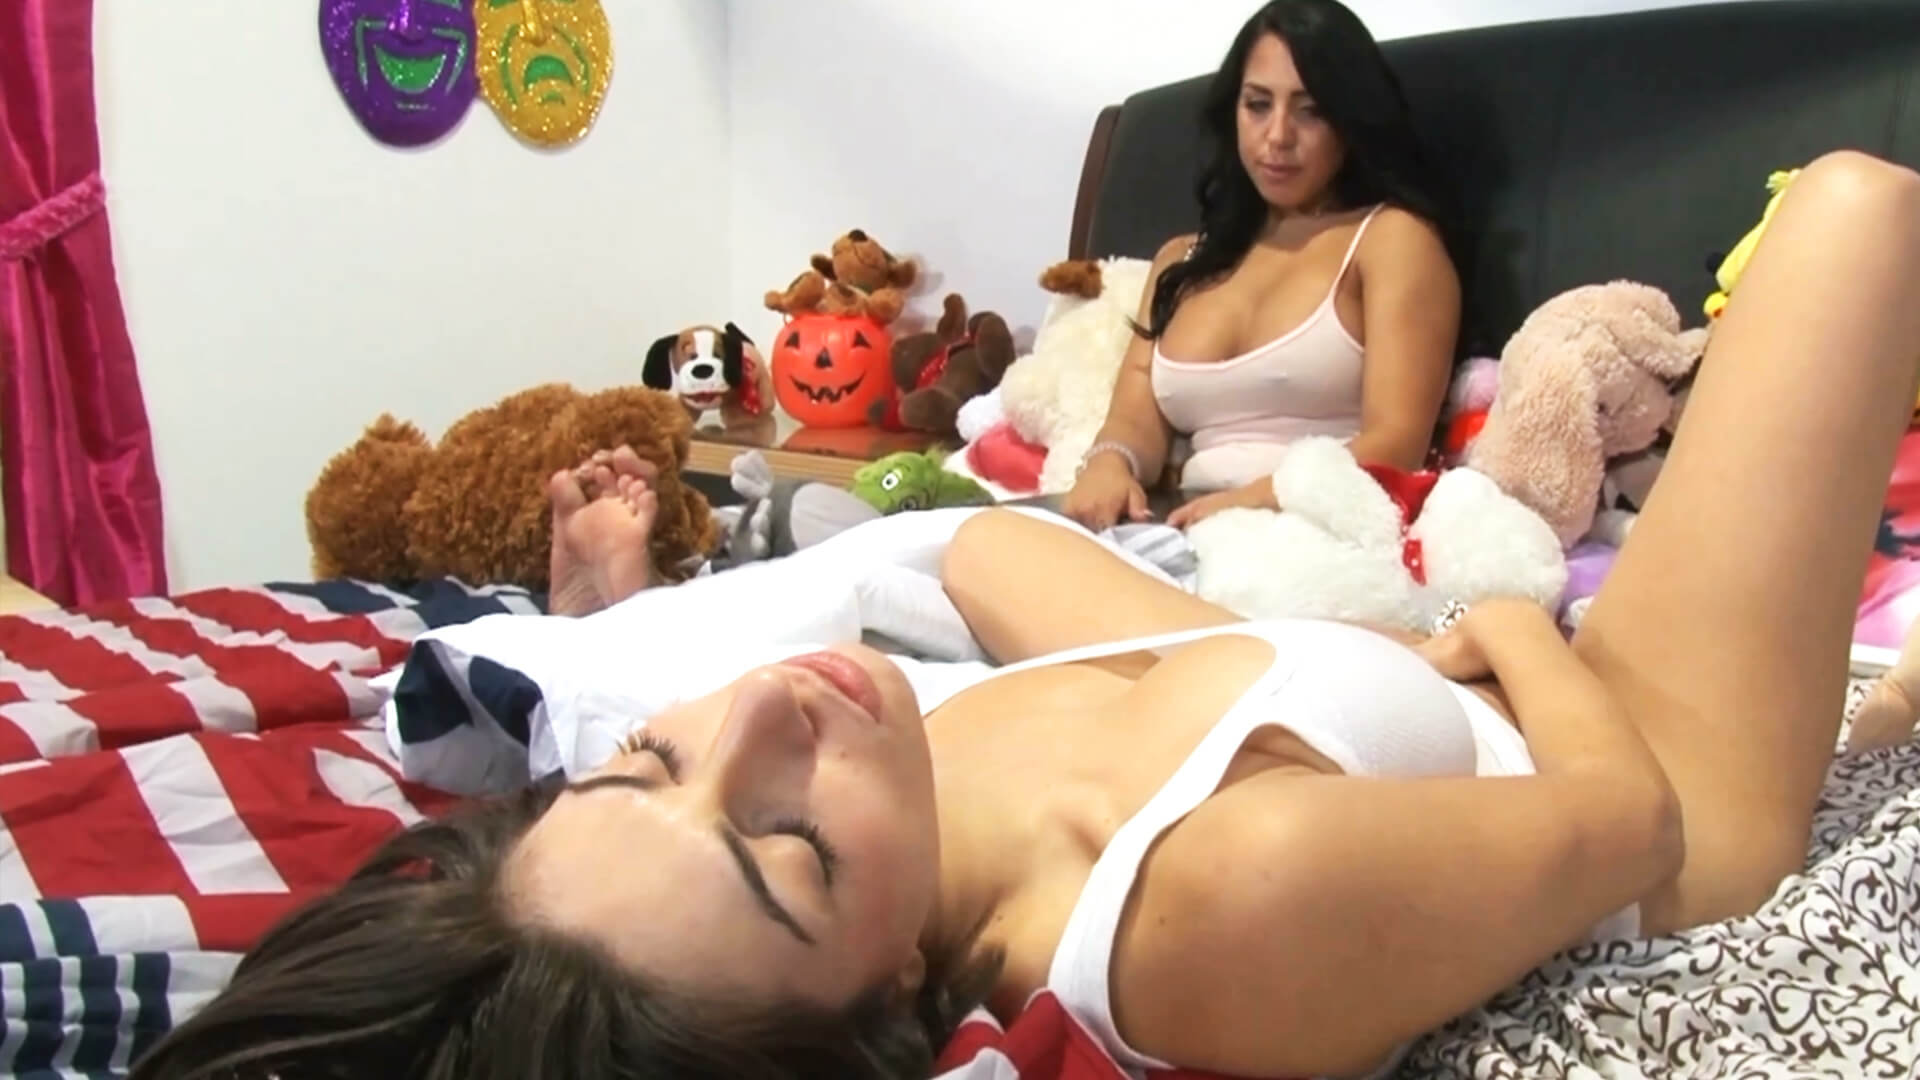 What to do when your Step-Sister starts masturbating right near you on the same bed